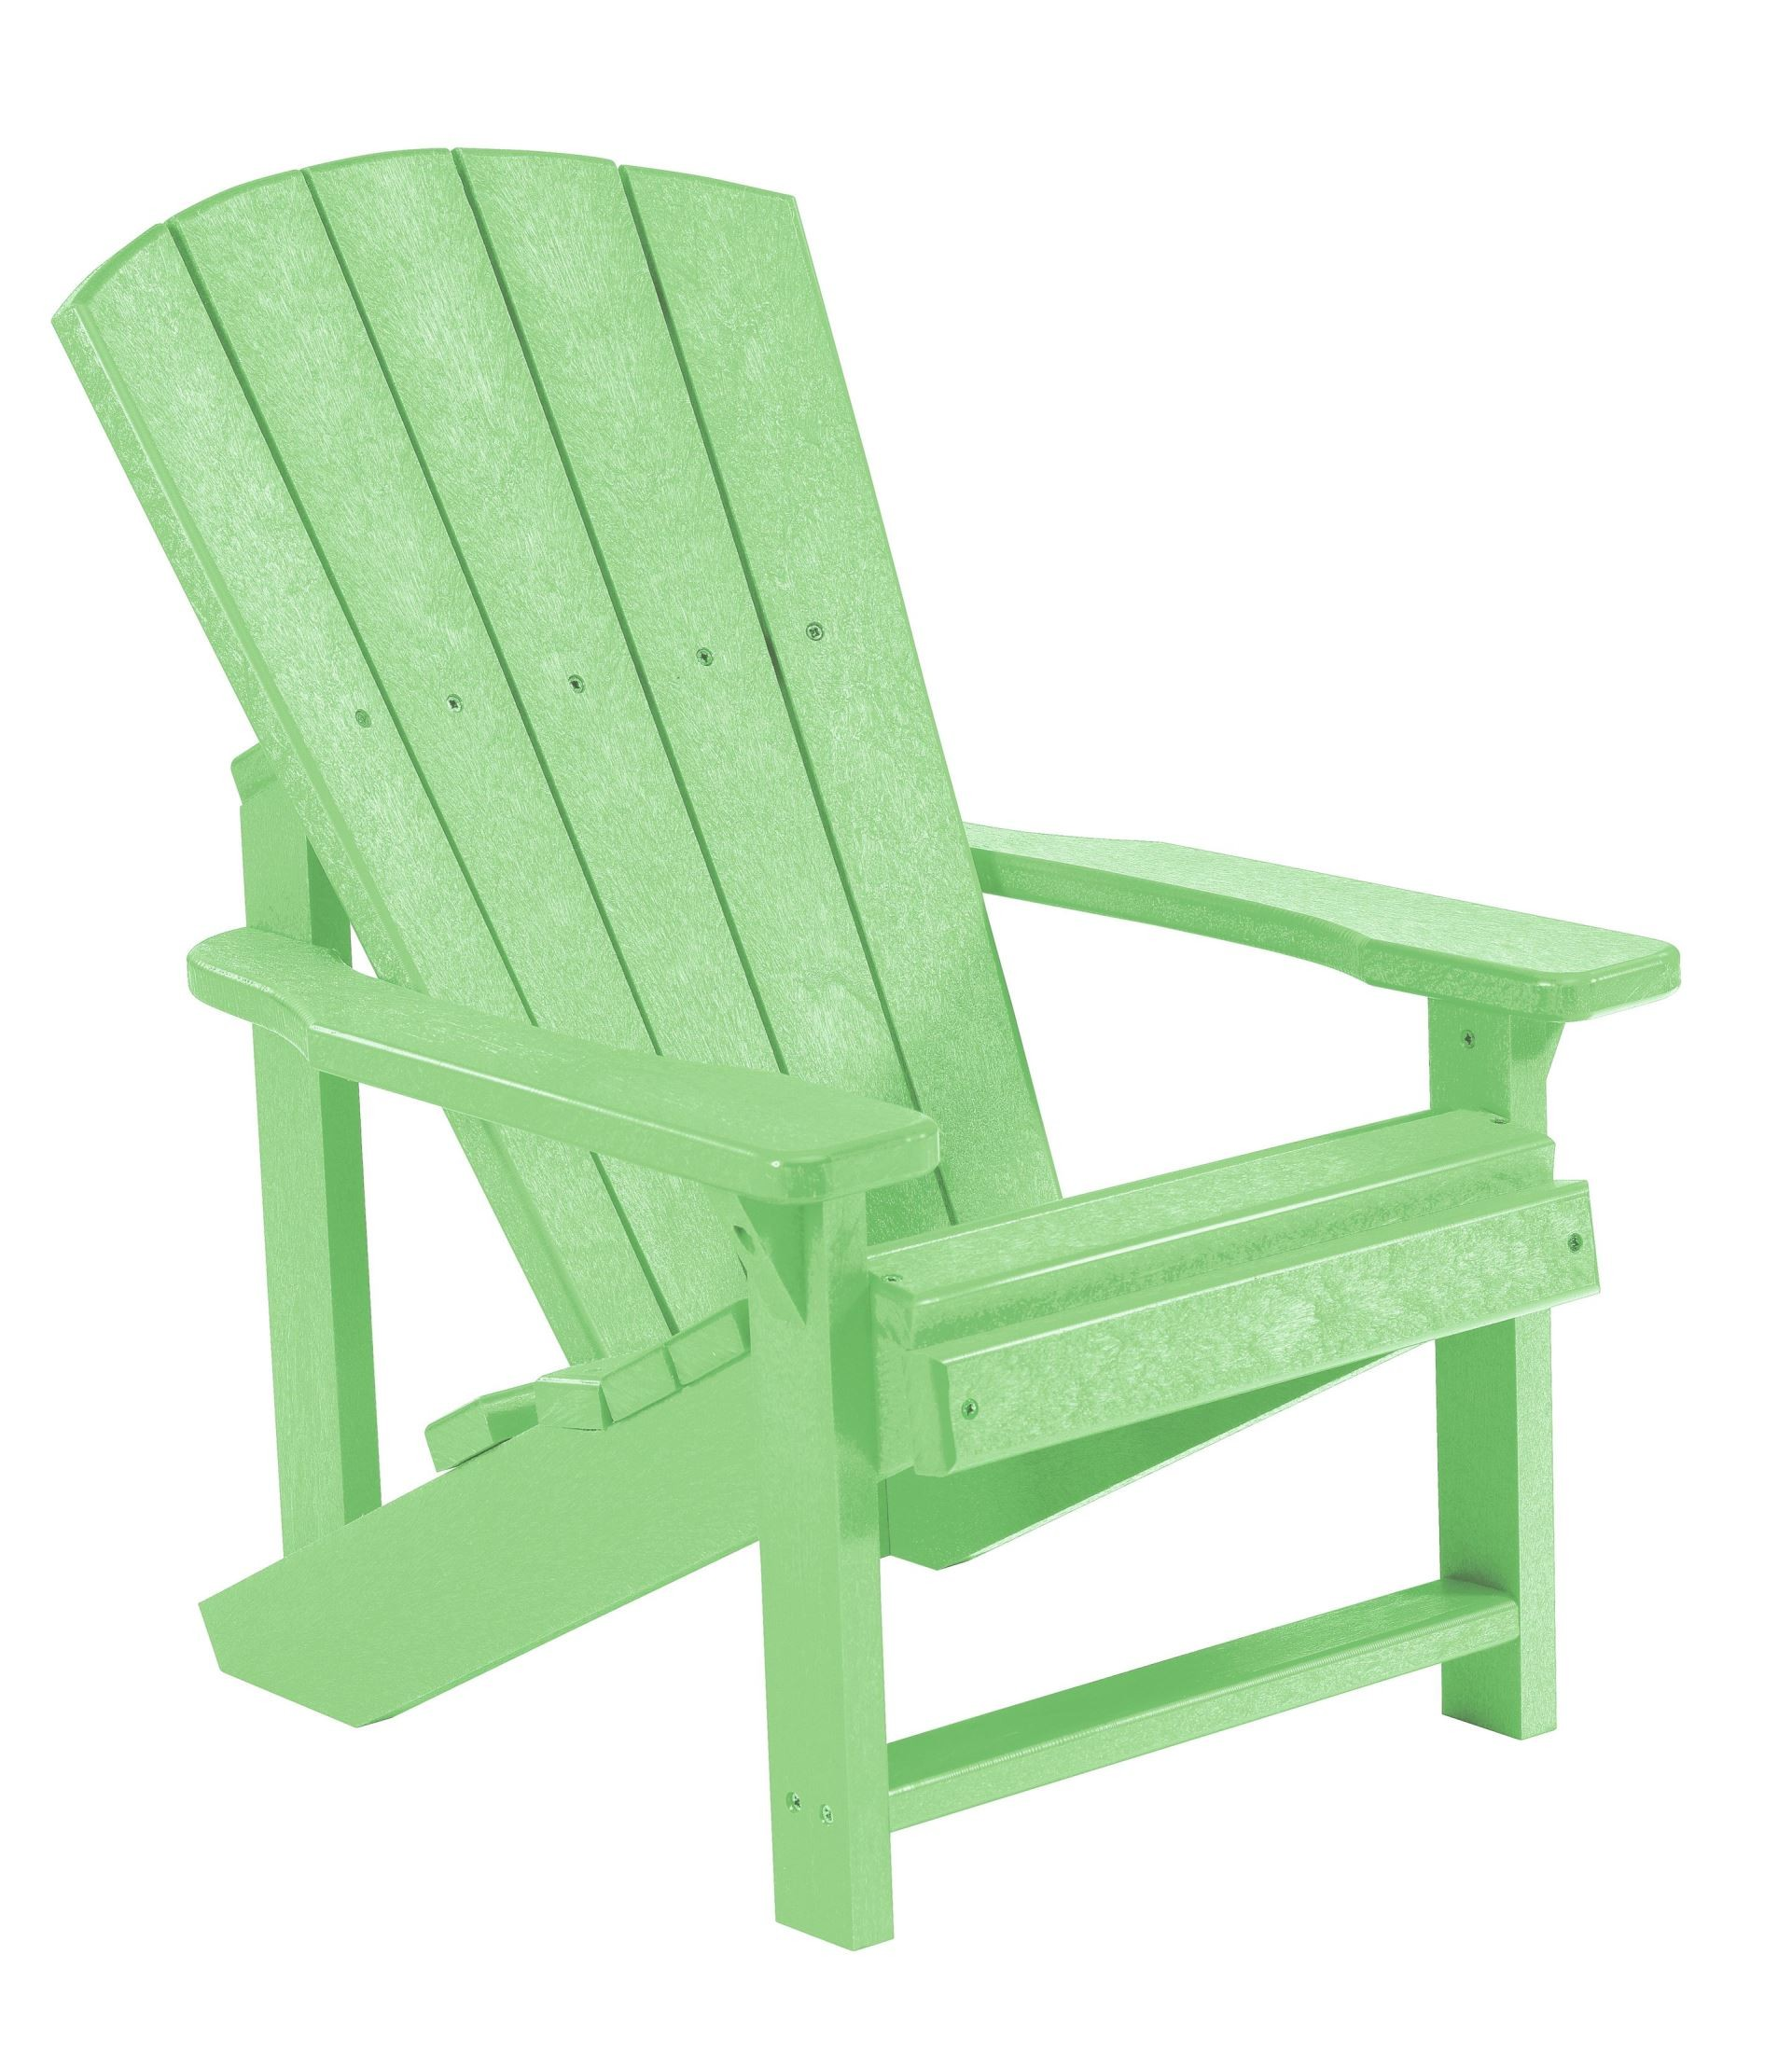 Generations Lime Green Kids Adirondack Chair From Cr